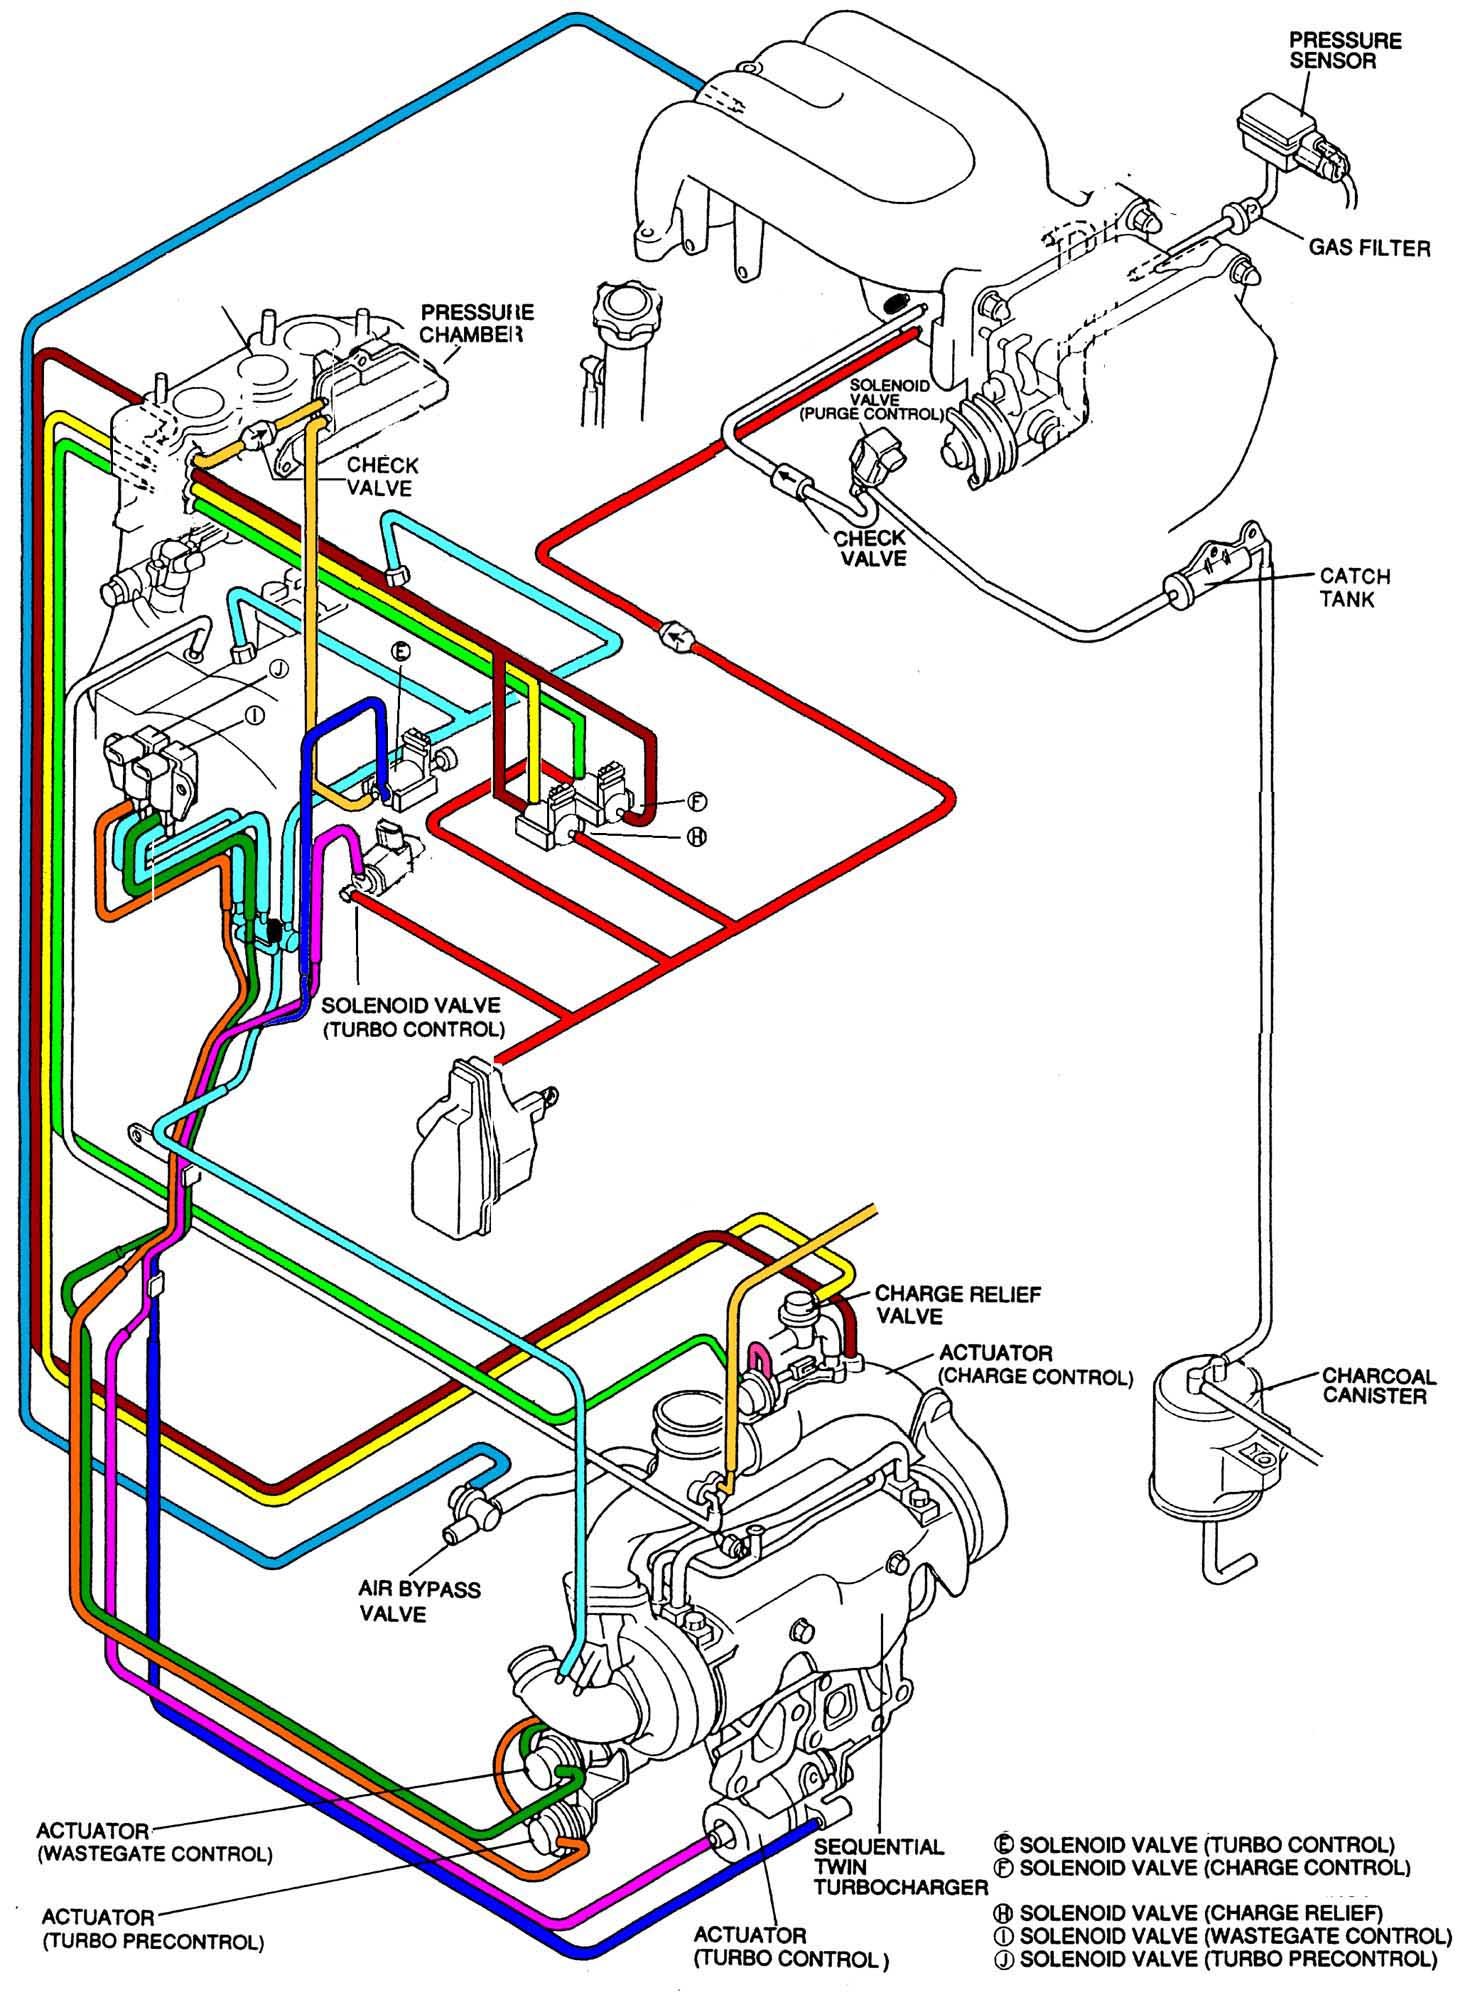 Rx8 Hose Diagram Auto Electrical Wiring 2005 Mazda Engine Turbo System Simplification Rh Robrobinette Com Rx 8